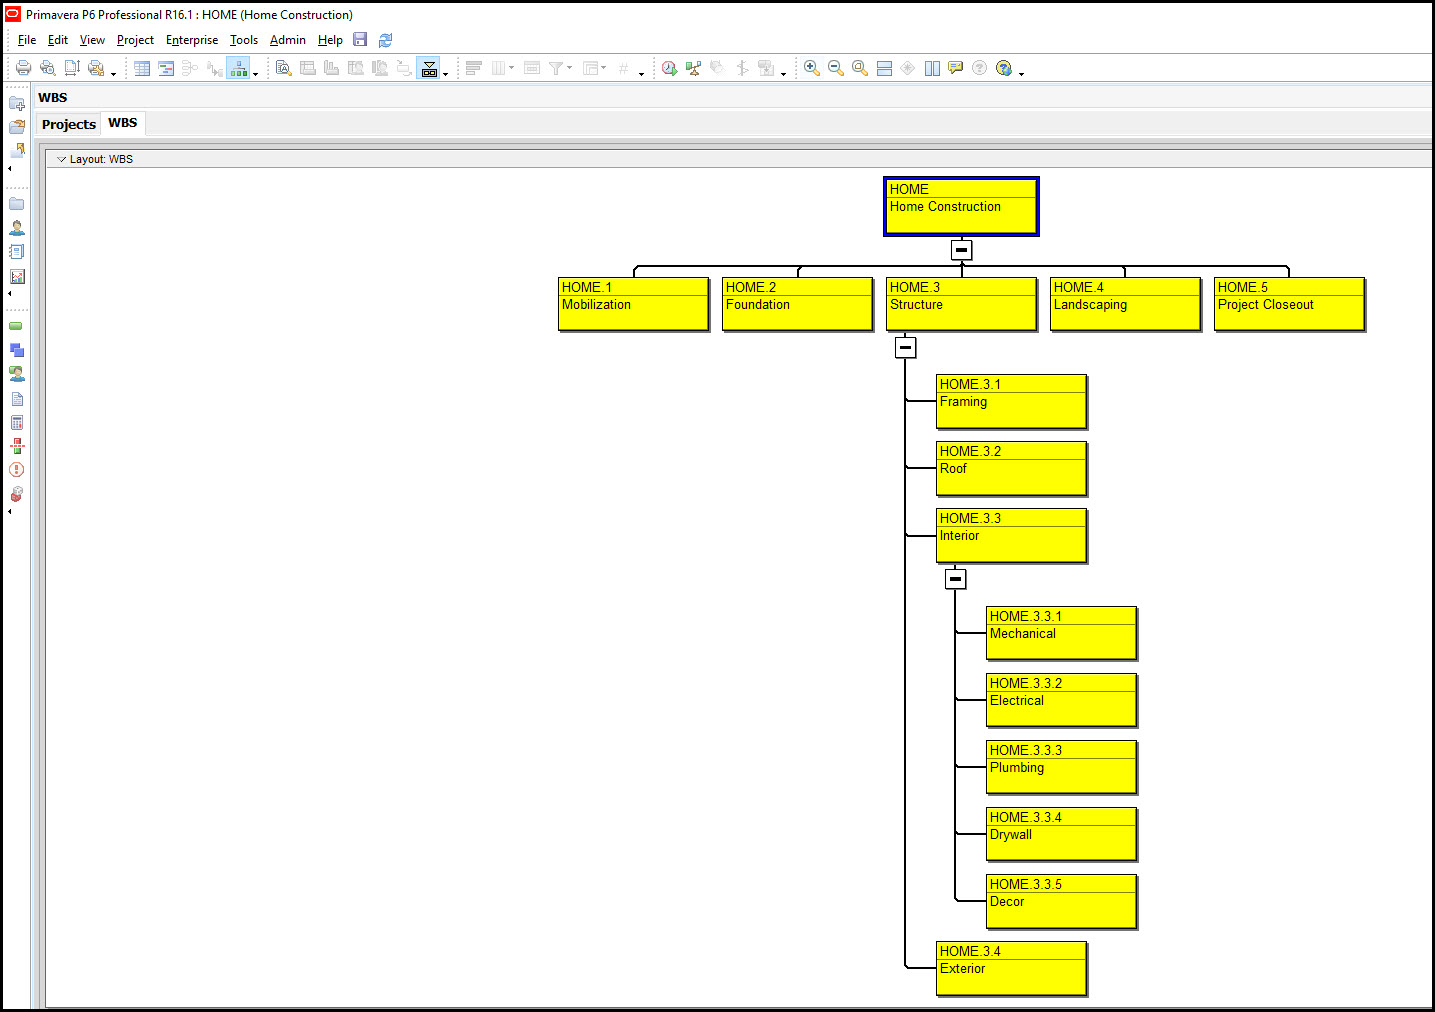 Creating a Work Breakdown Structure (WBS) in Primavera P6